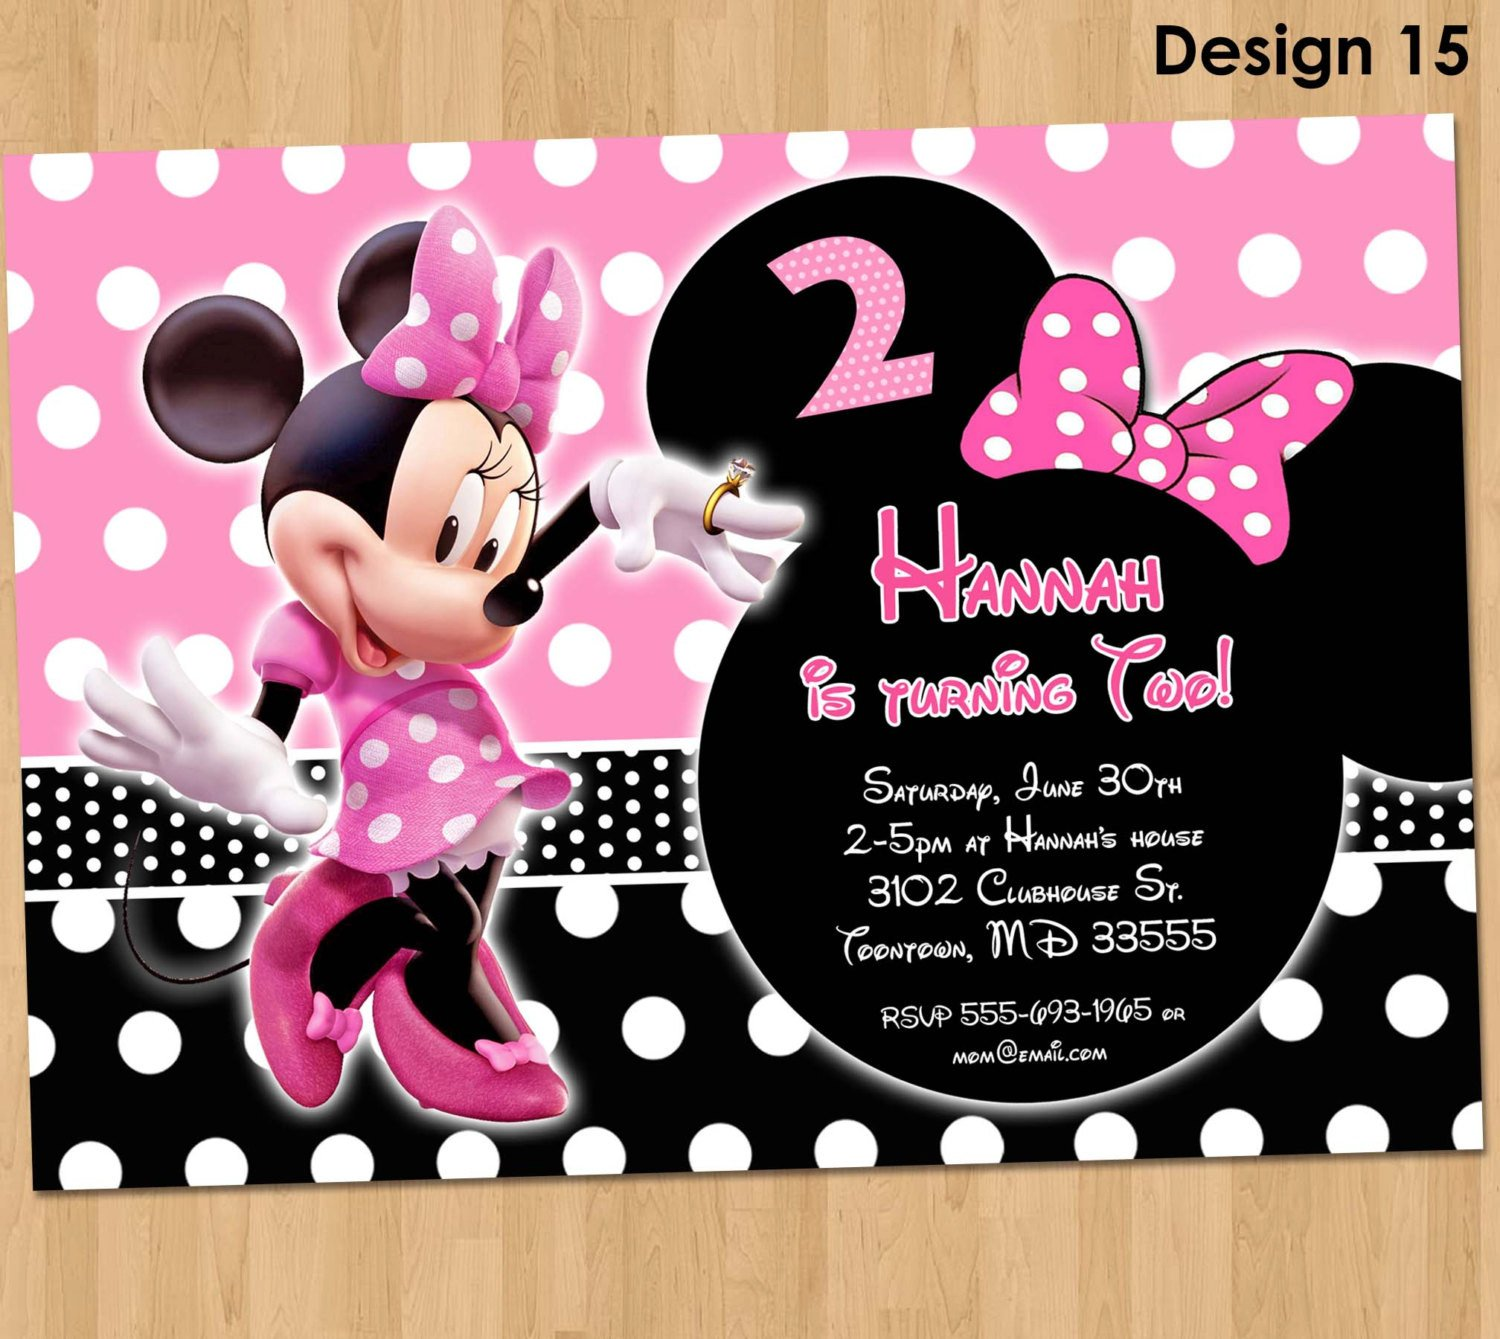 Minnie Mouse Party Invitations Minnie Mouse Invitation Minnie Mouse Birthday Invitation